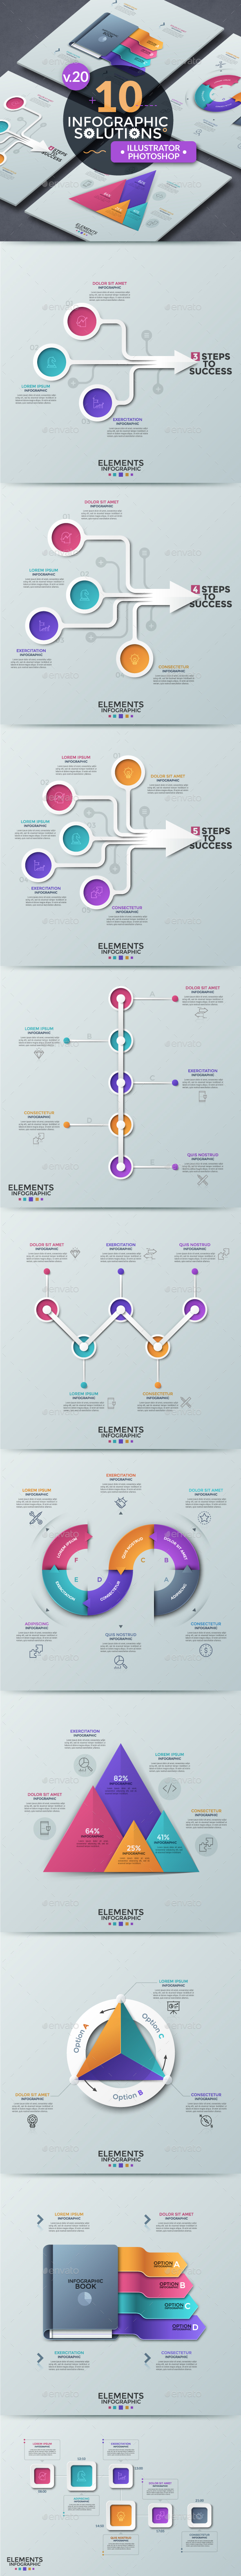 Infographic Solutions. Part 20 - Infographics